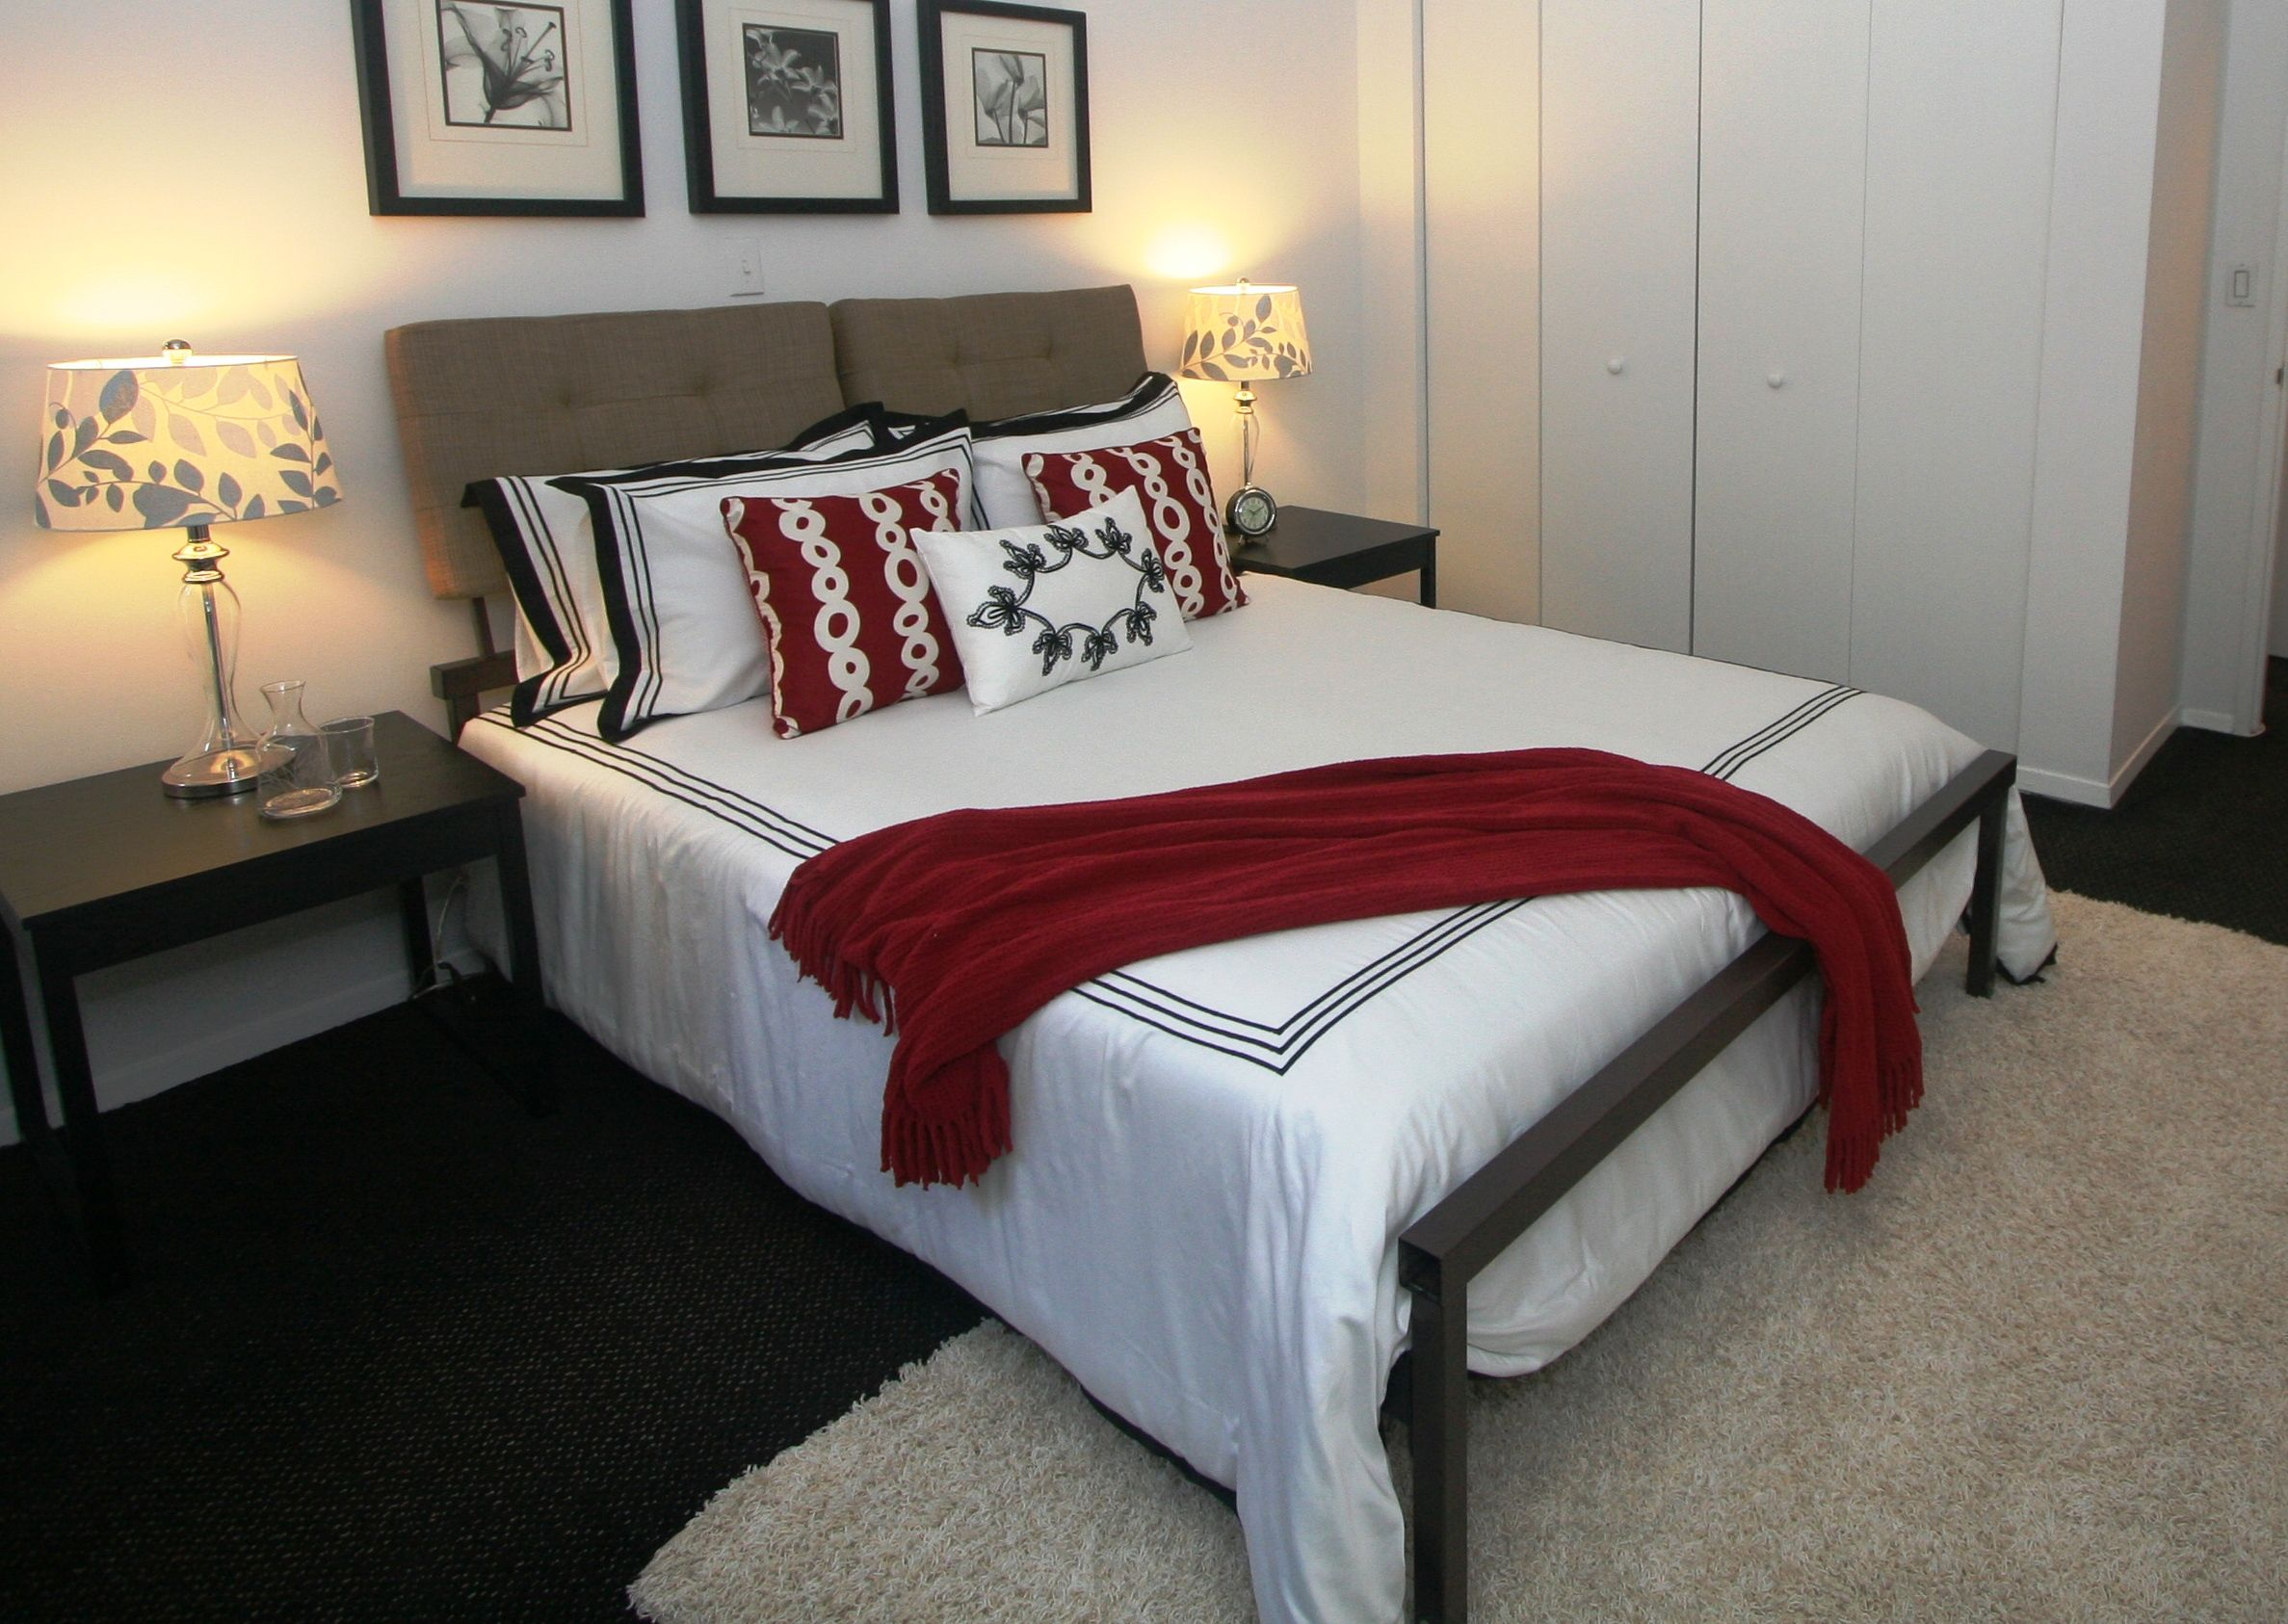 Black and white and red bedrooms - Black And White With Red Accents Bedroom Staged To Sell Home Decor